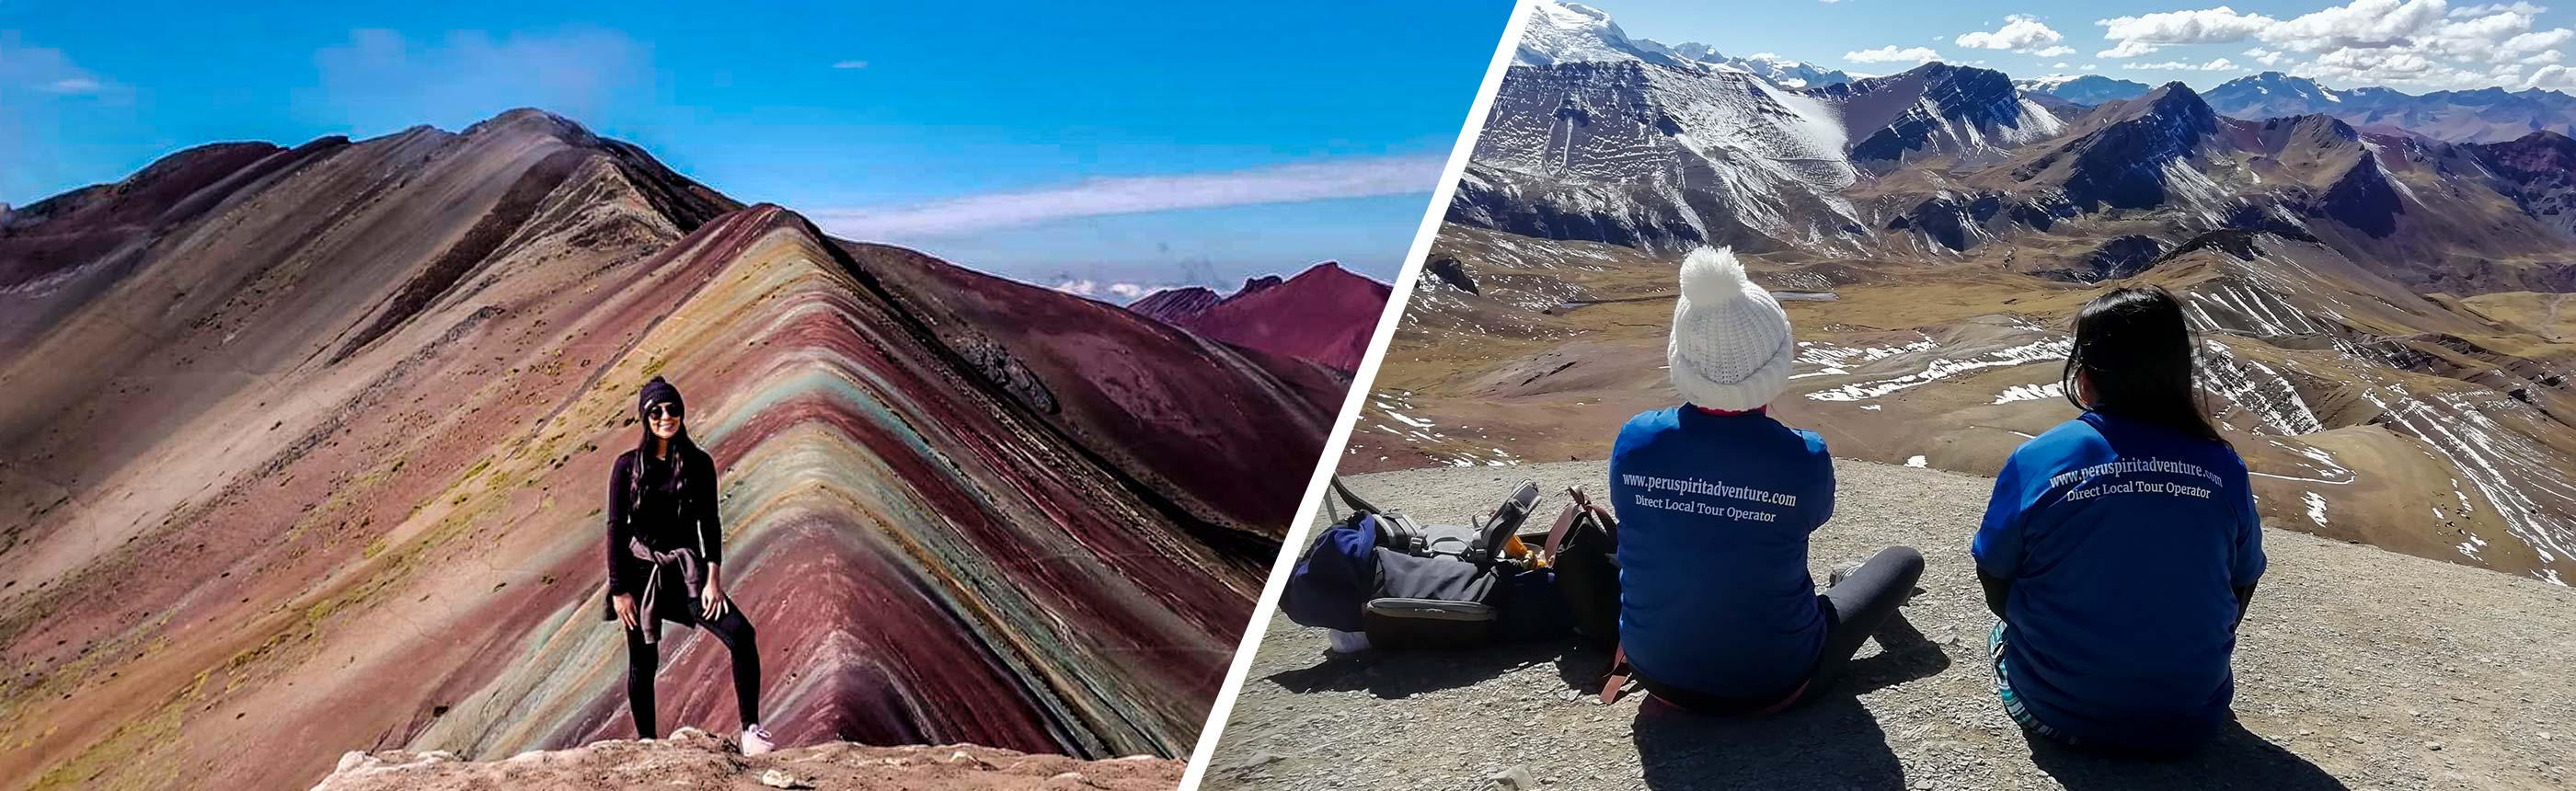 Epic High Altitude Adventure to Rainbow Mountain Off-The-Beaten-Path Trail